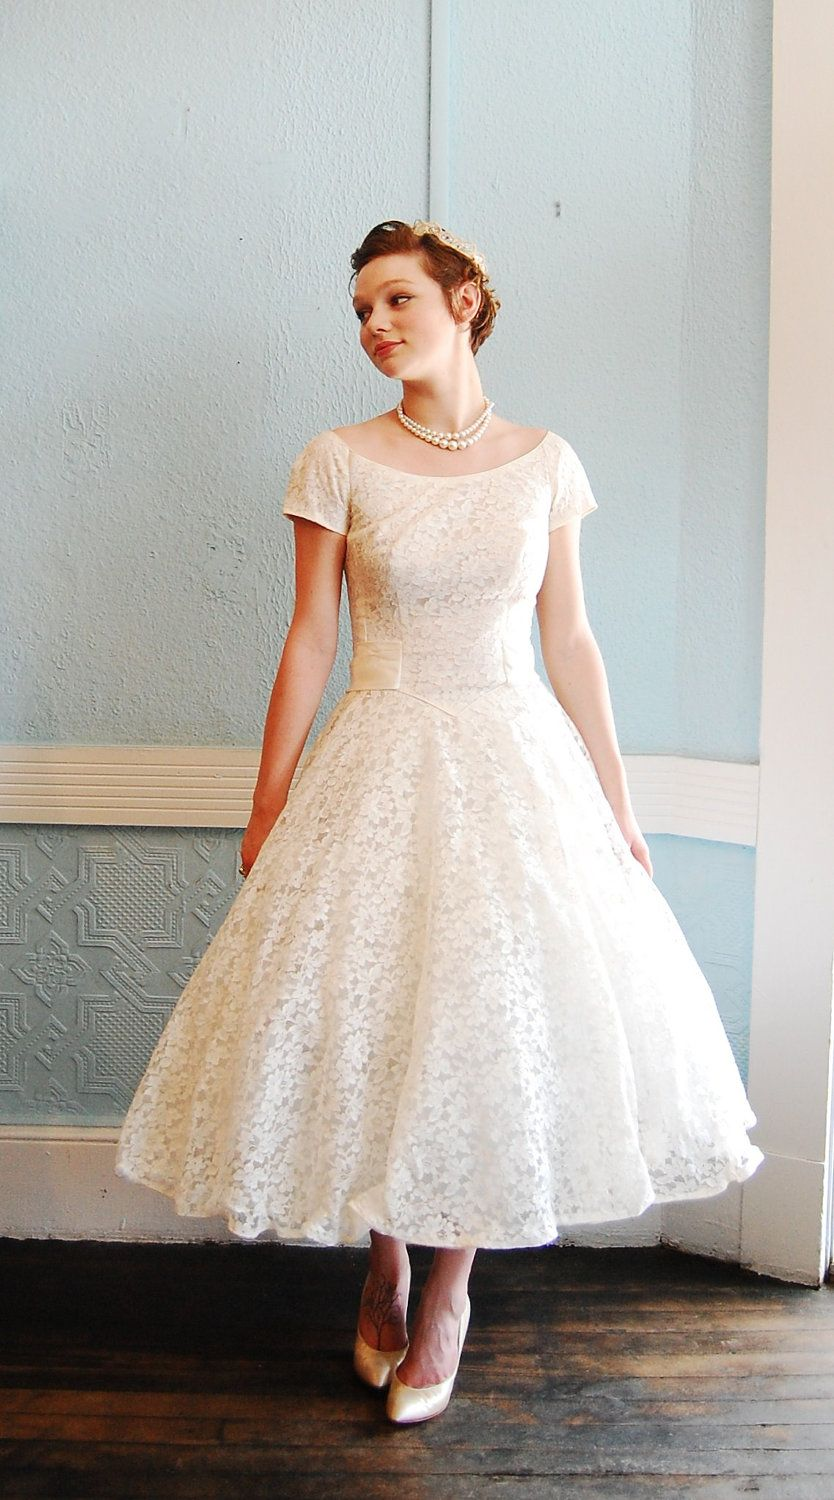 Etsy Wedding Dresses | Vintage 1950s White Lace Cap Sleeve Tea ...